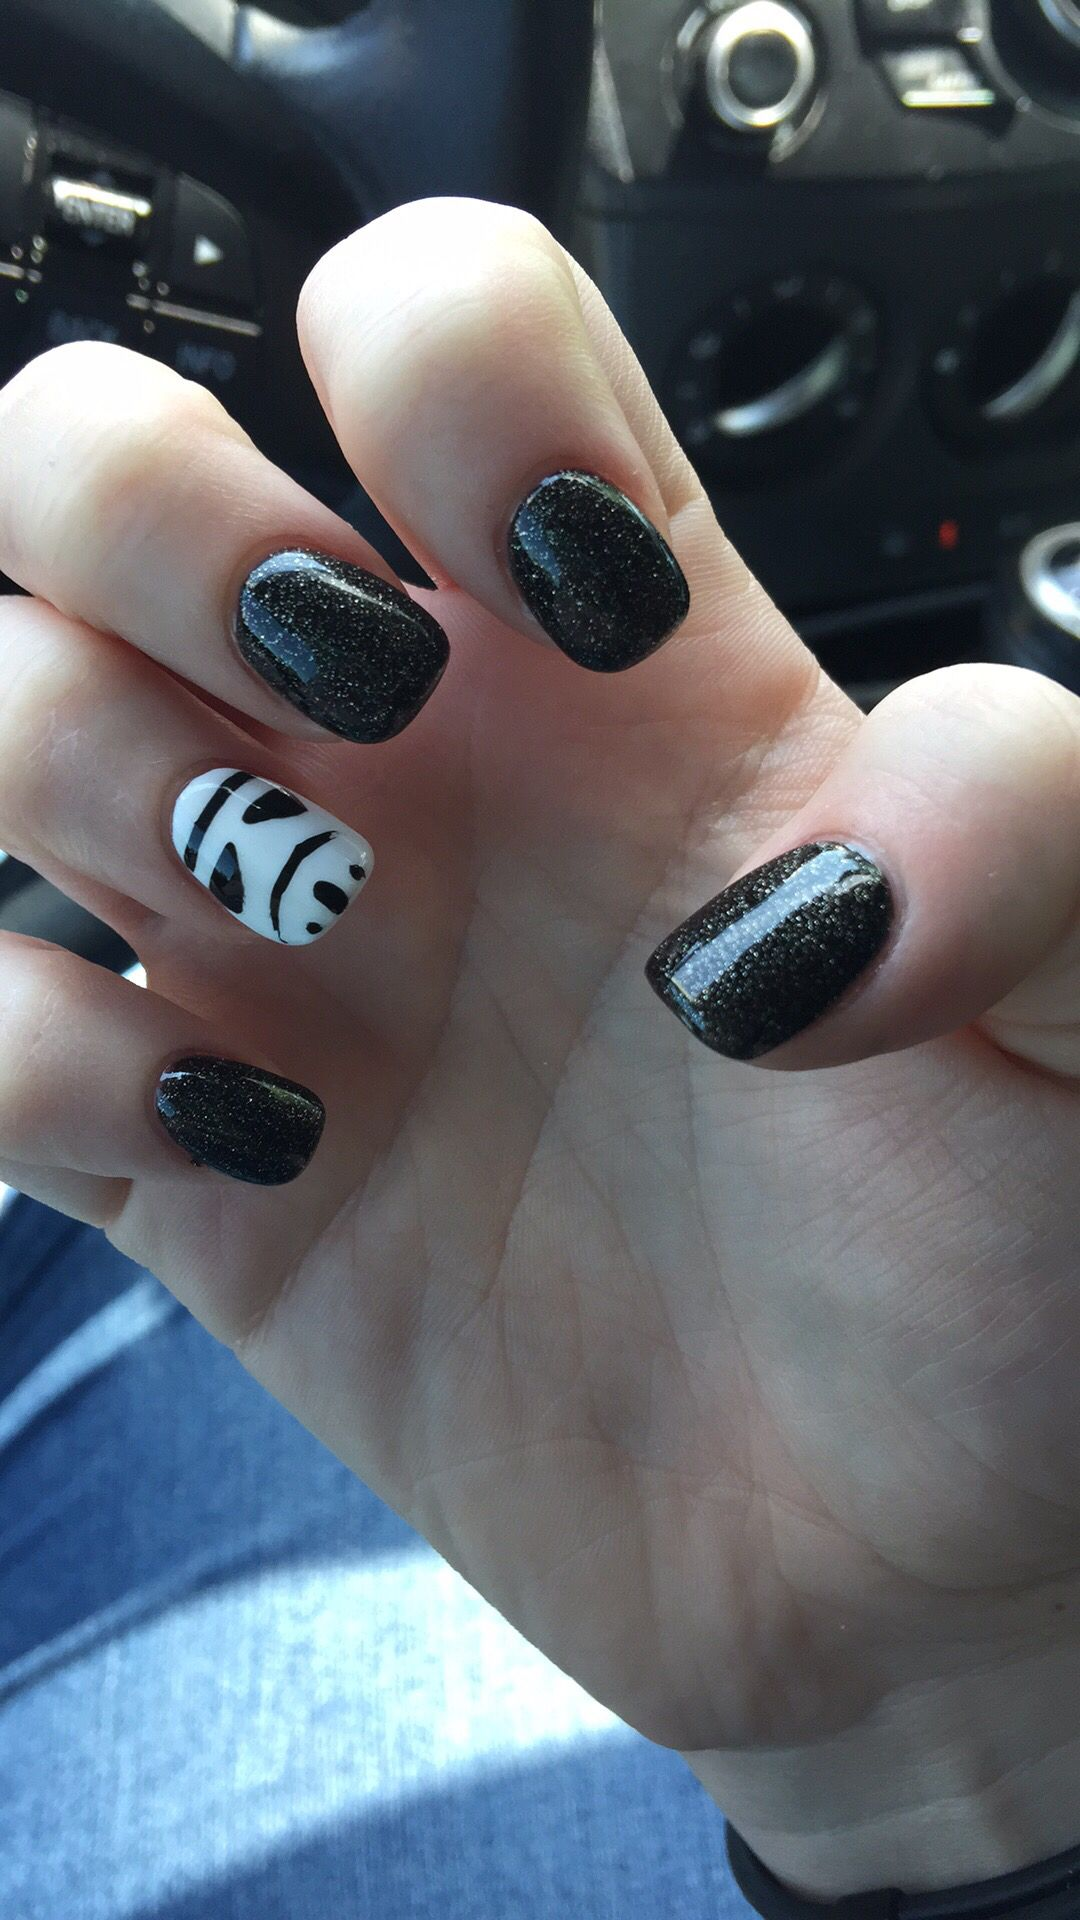 check star wars nails stormtroopers